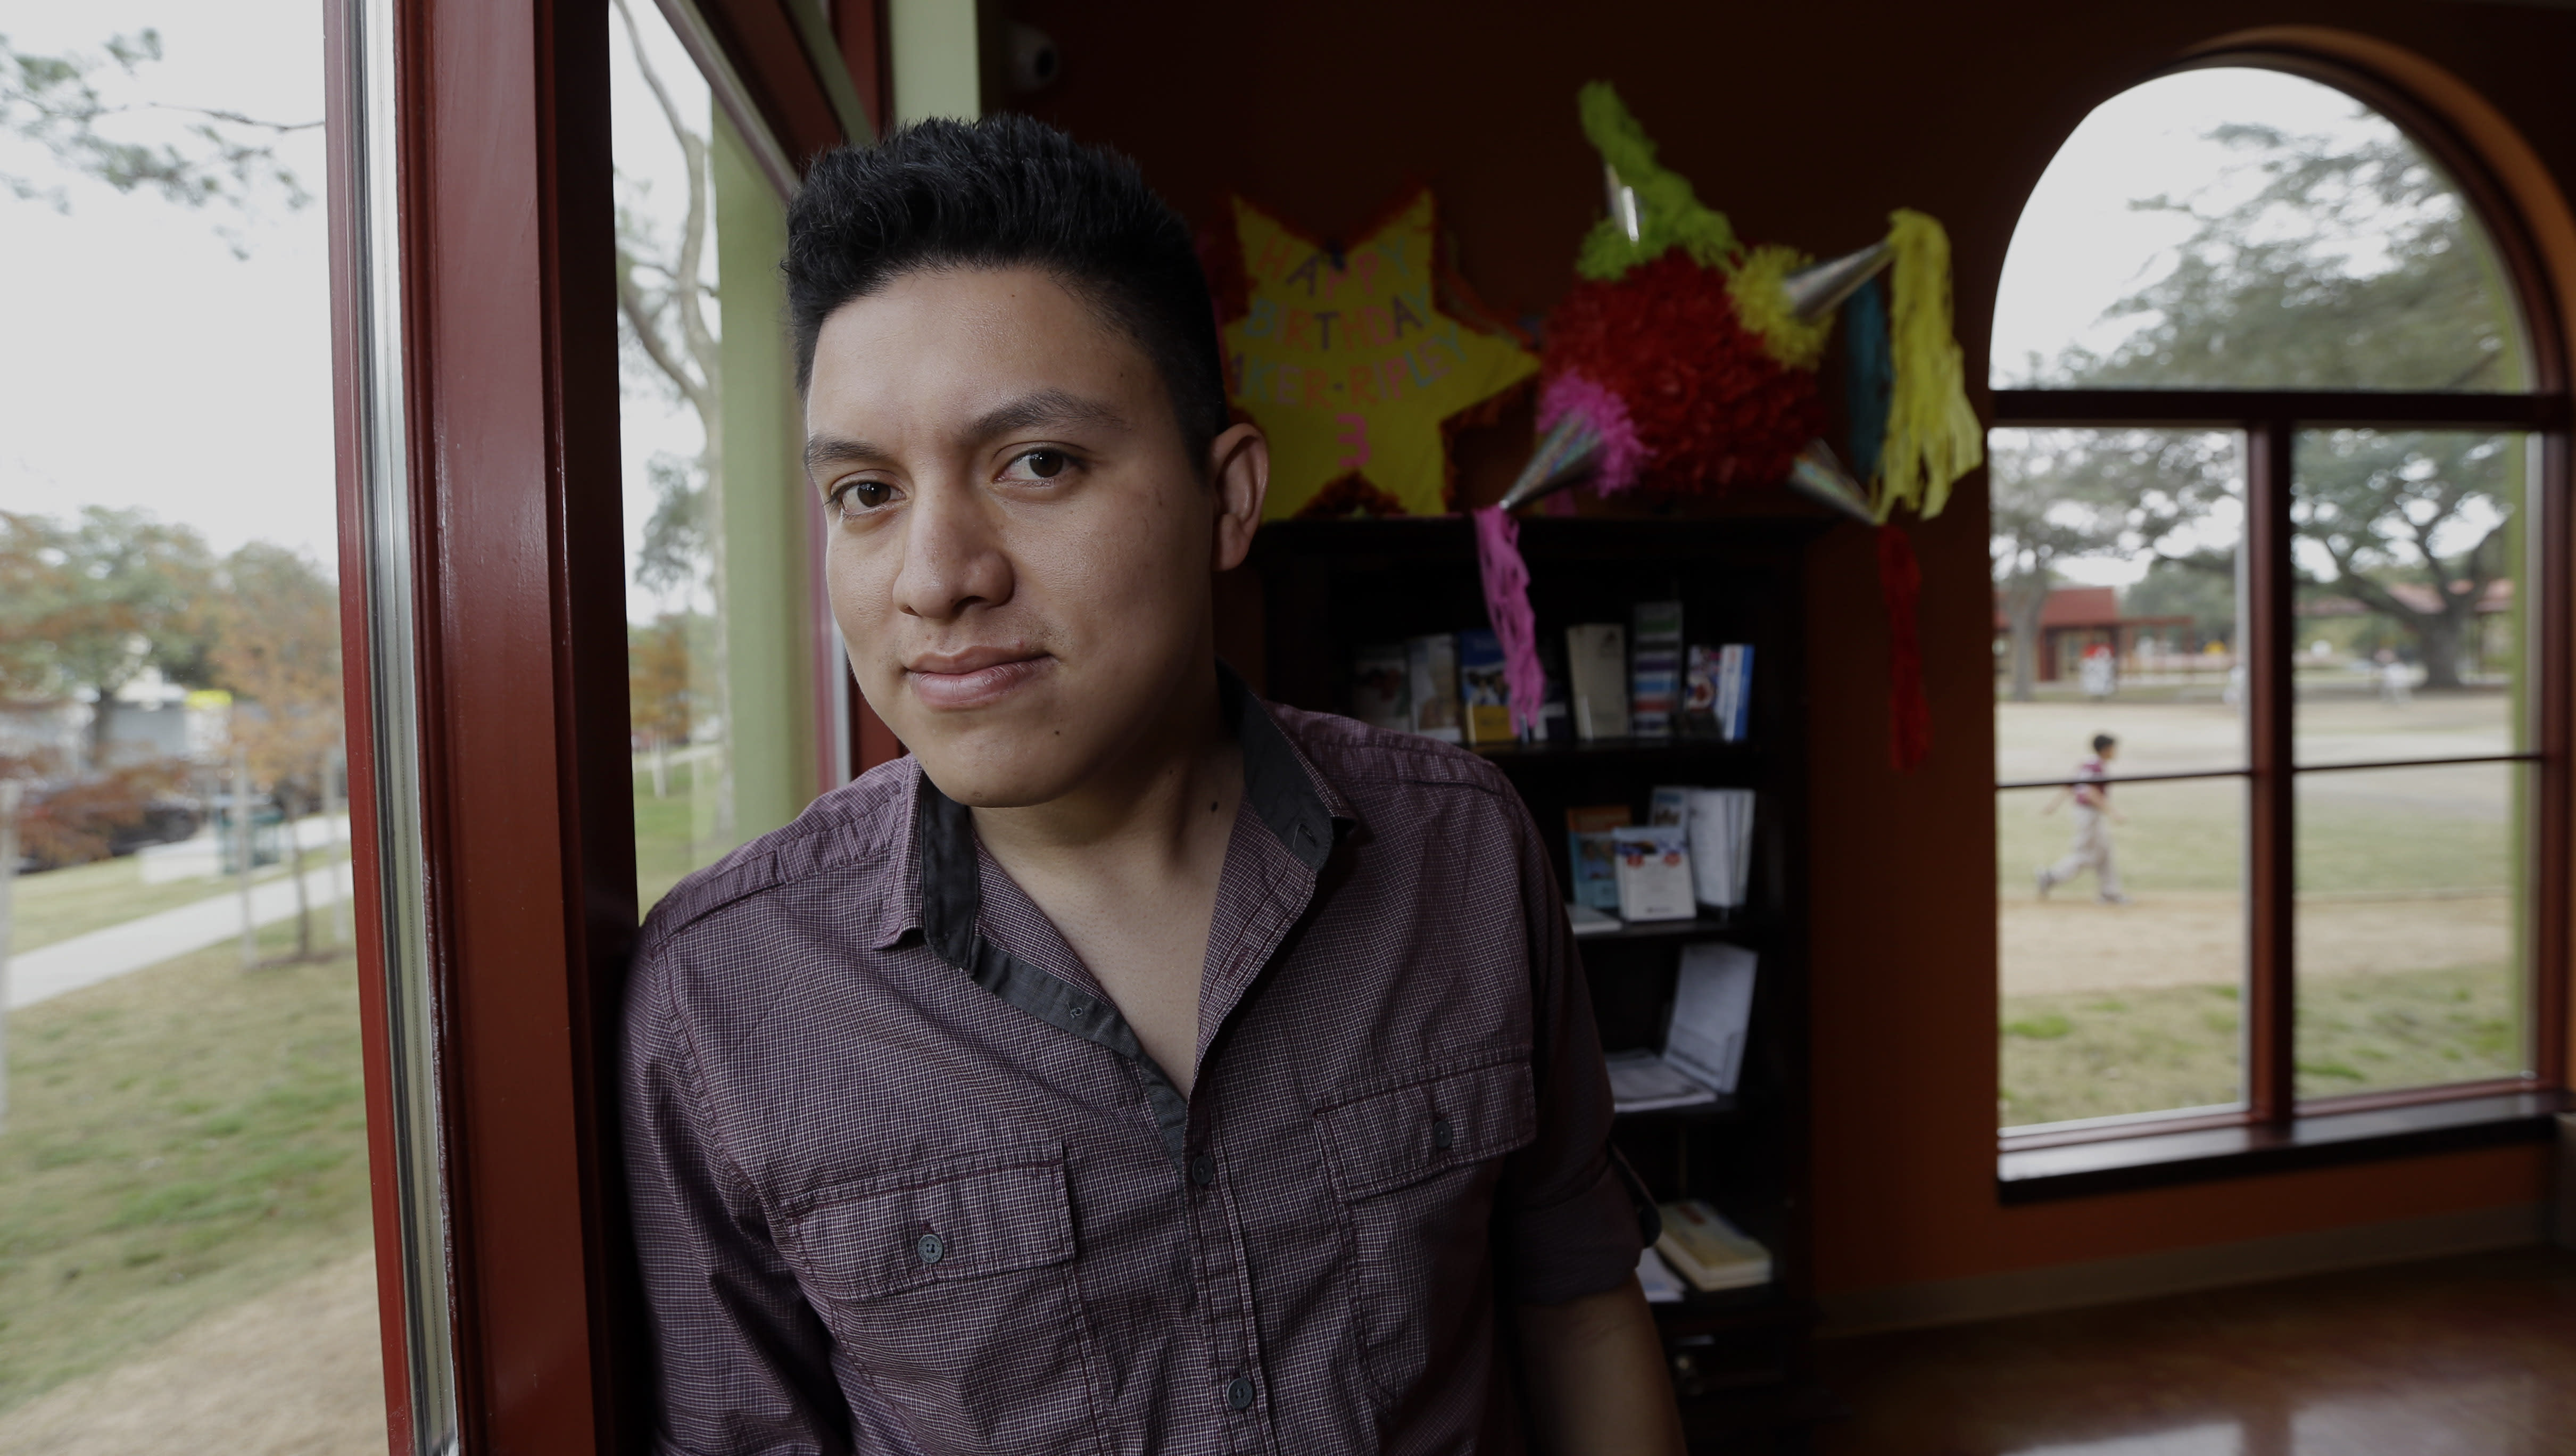 Manuel Enrique Angel, 28, of El Salvador, poses in Houston Wednesday, Dec. 4, 2013. Angel made learning English his first priority upon arriving in Houston from his native El Salvador two years ago. He now speaks English clearly and deliberately and plans to apply for citizenship as soon as he becomes eligible later this year. He estimates it will take him up to eight months to save the money for the citizenship application. (AP Photo/David J. Phillip)